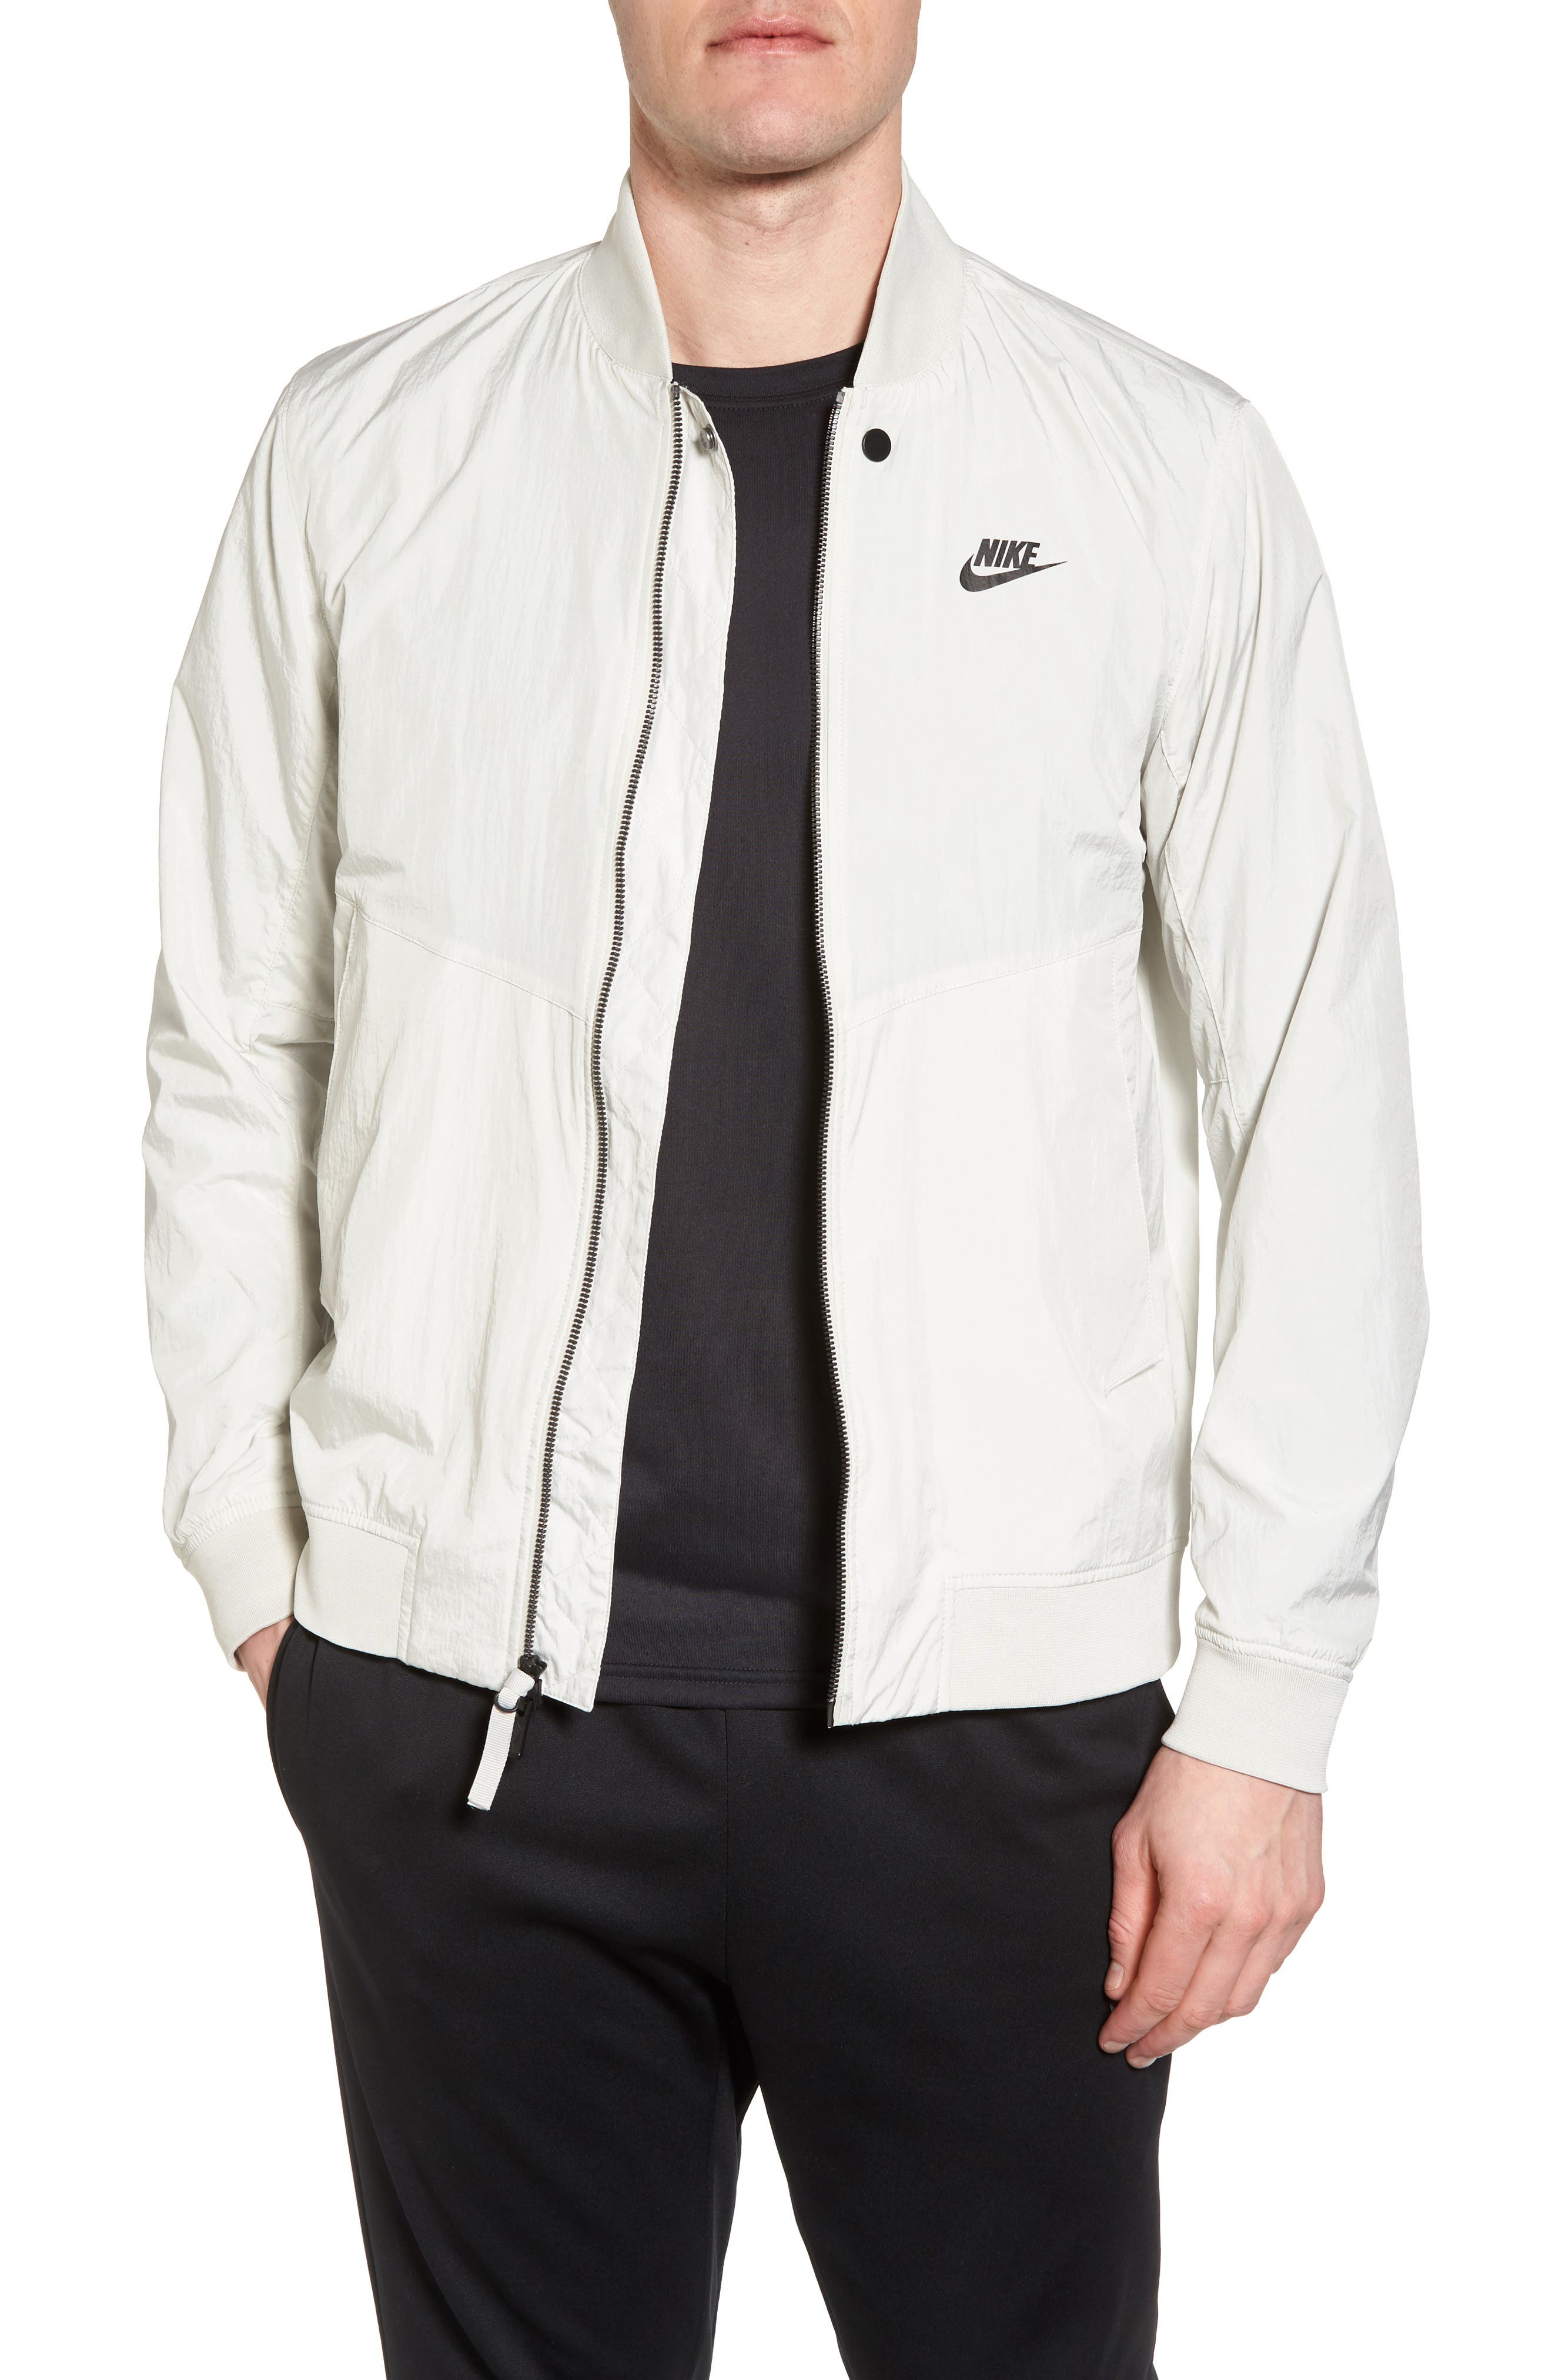 NSW Franchise Varsity Jacket,                         Main,                         color, Light Bone/ Light Bone/ Black